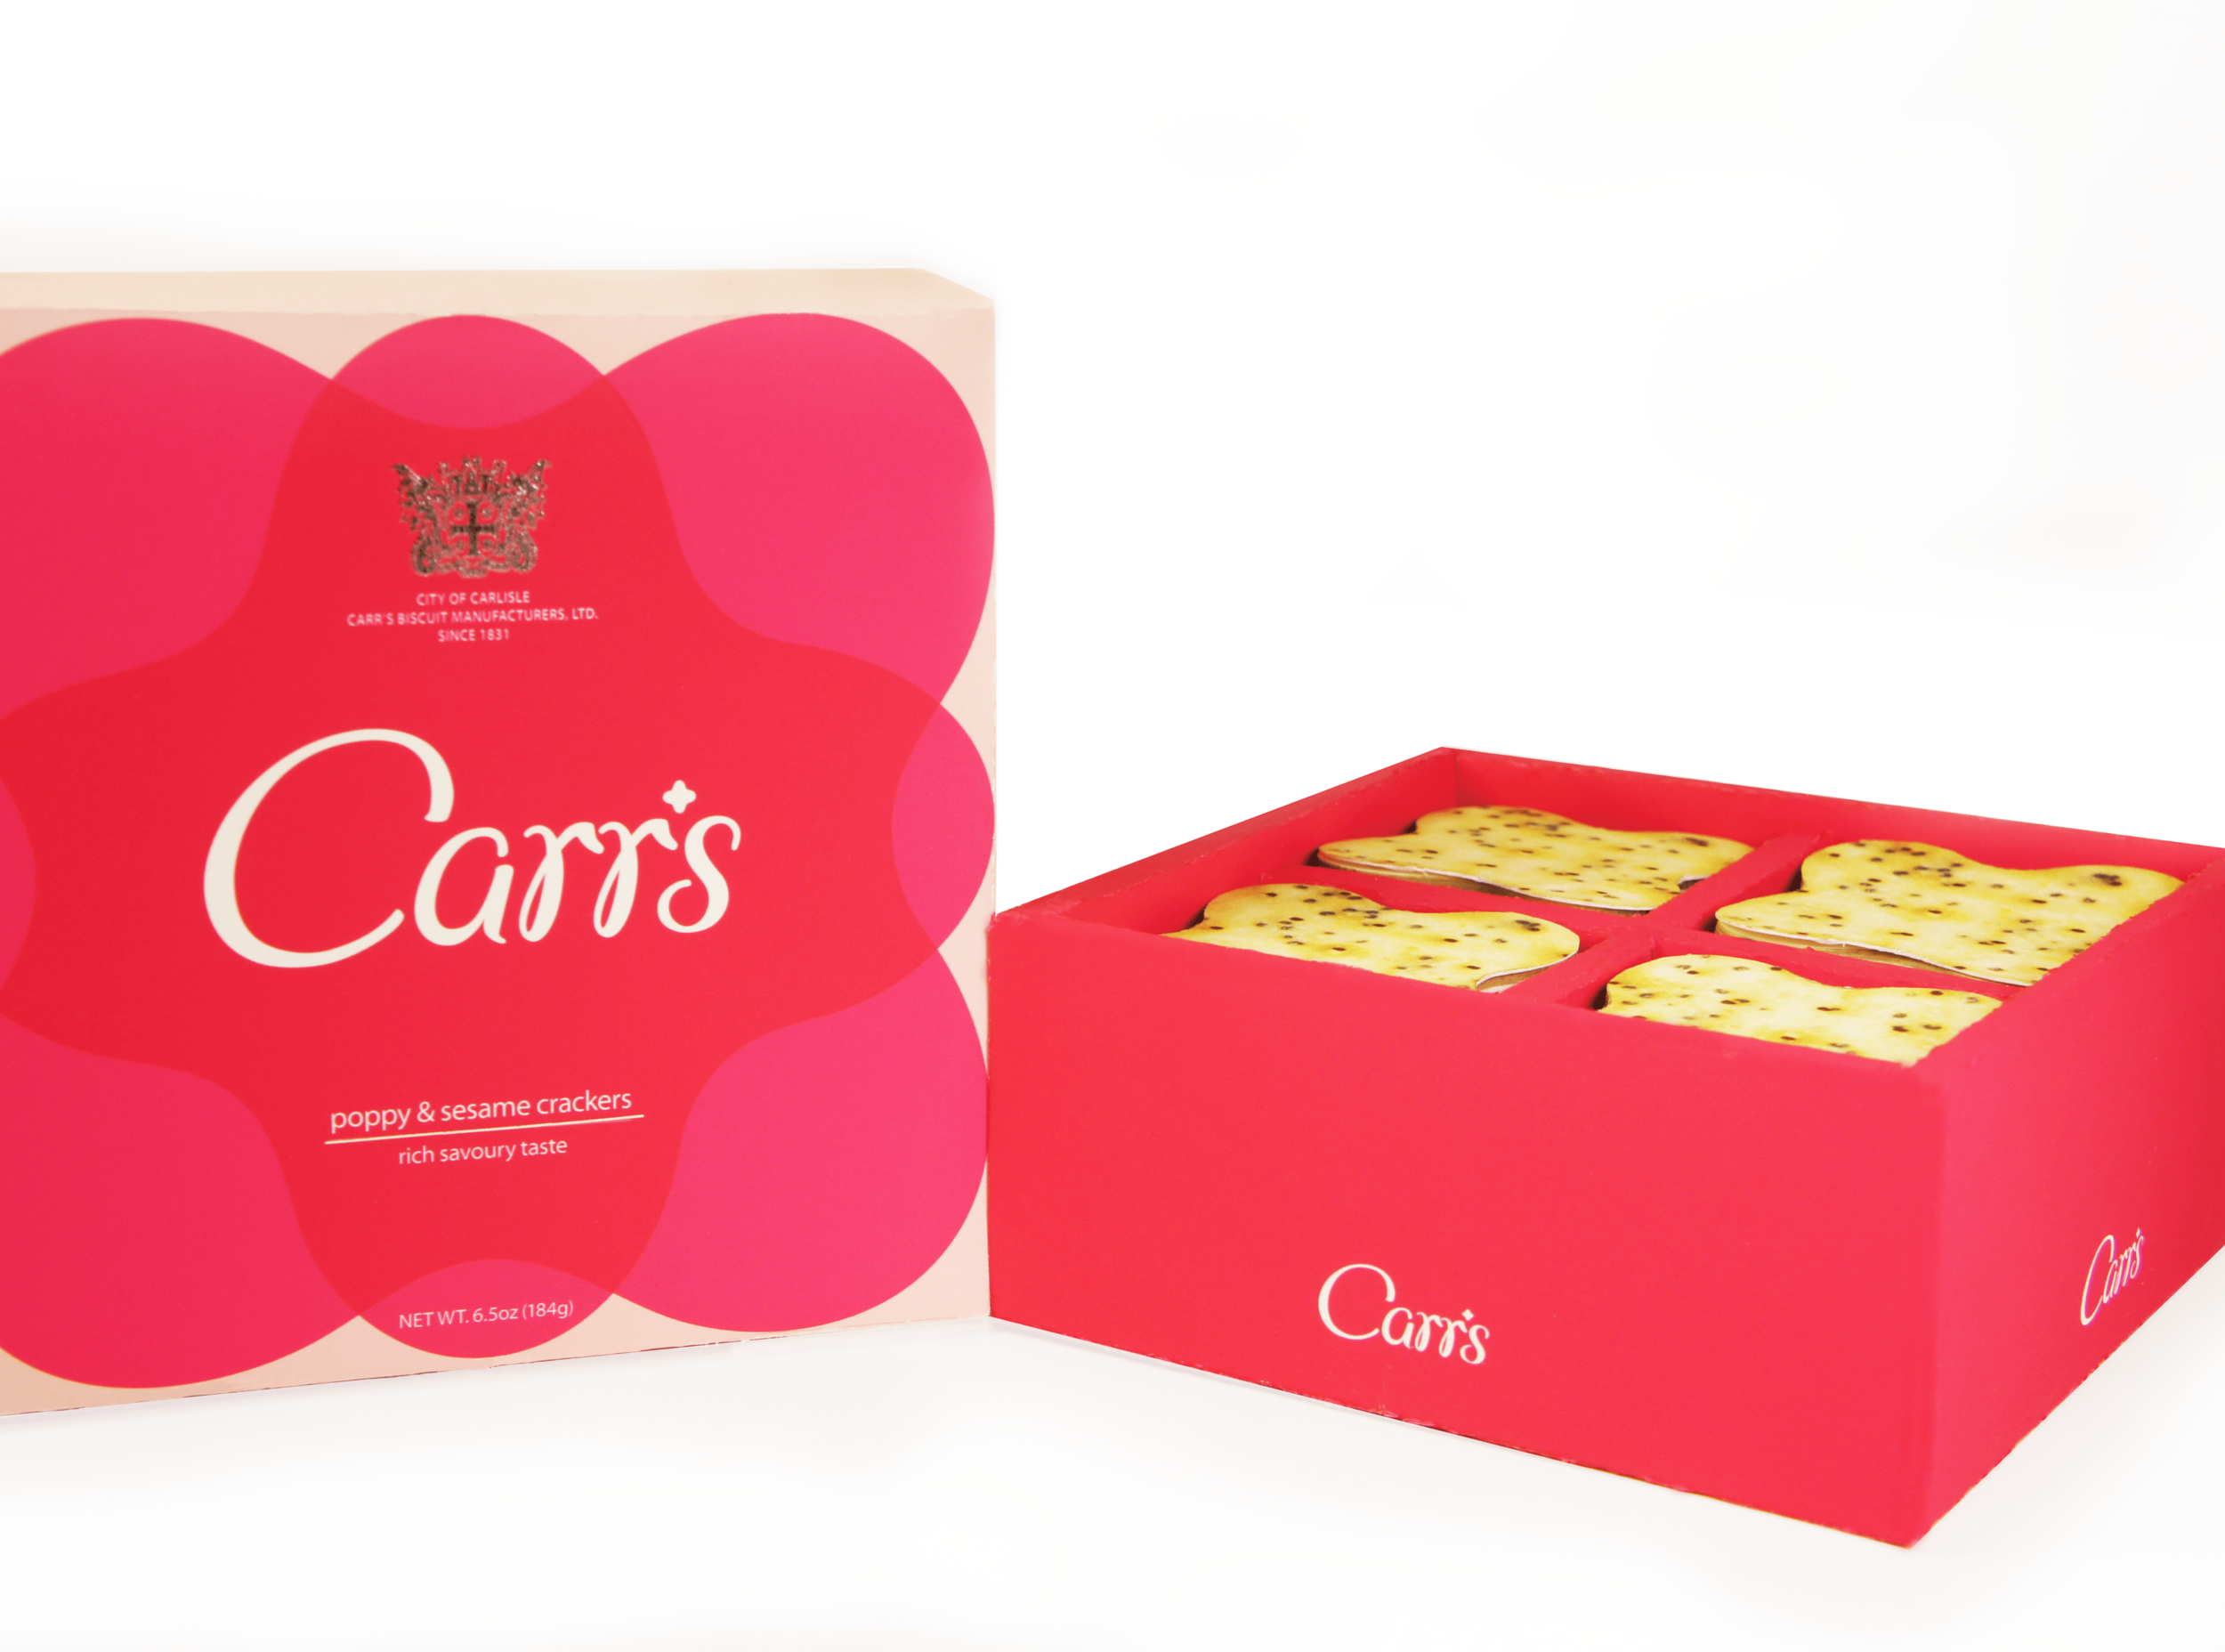 Redesign-Carr's-Biscuits-Redesign-box.png